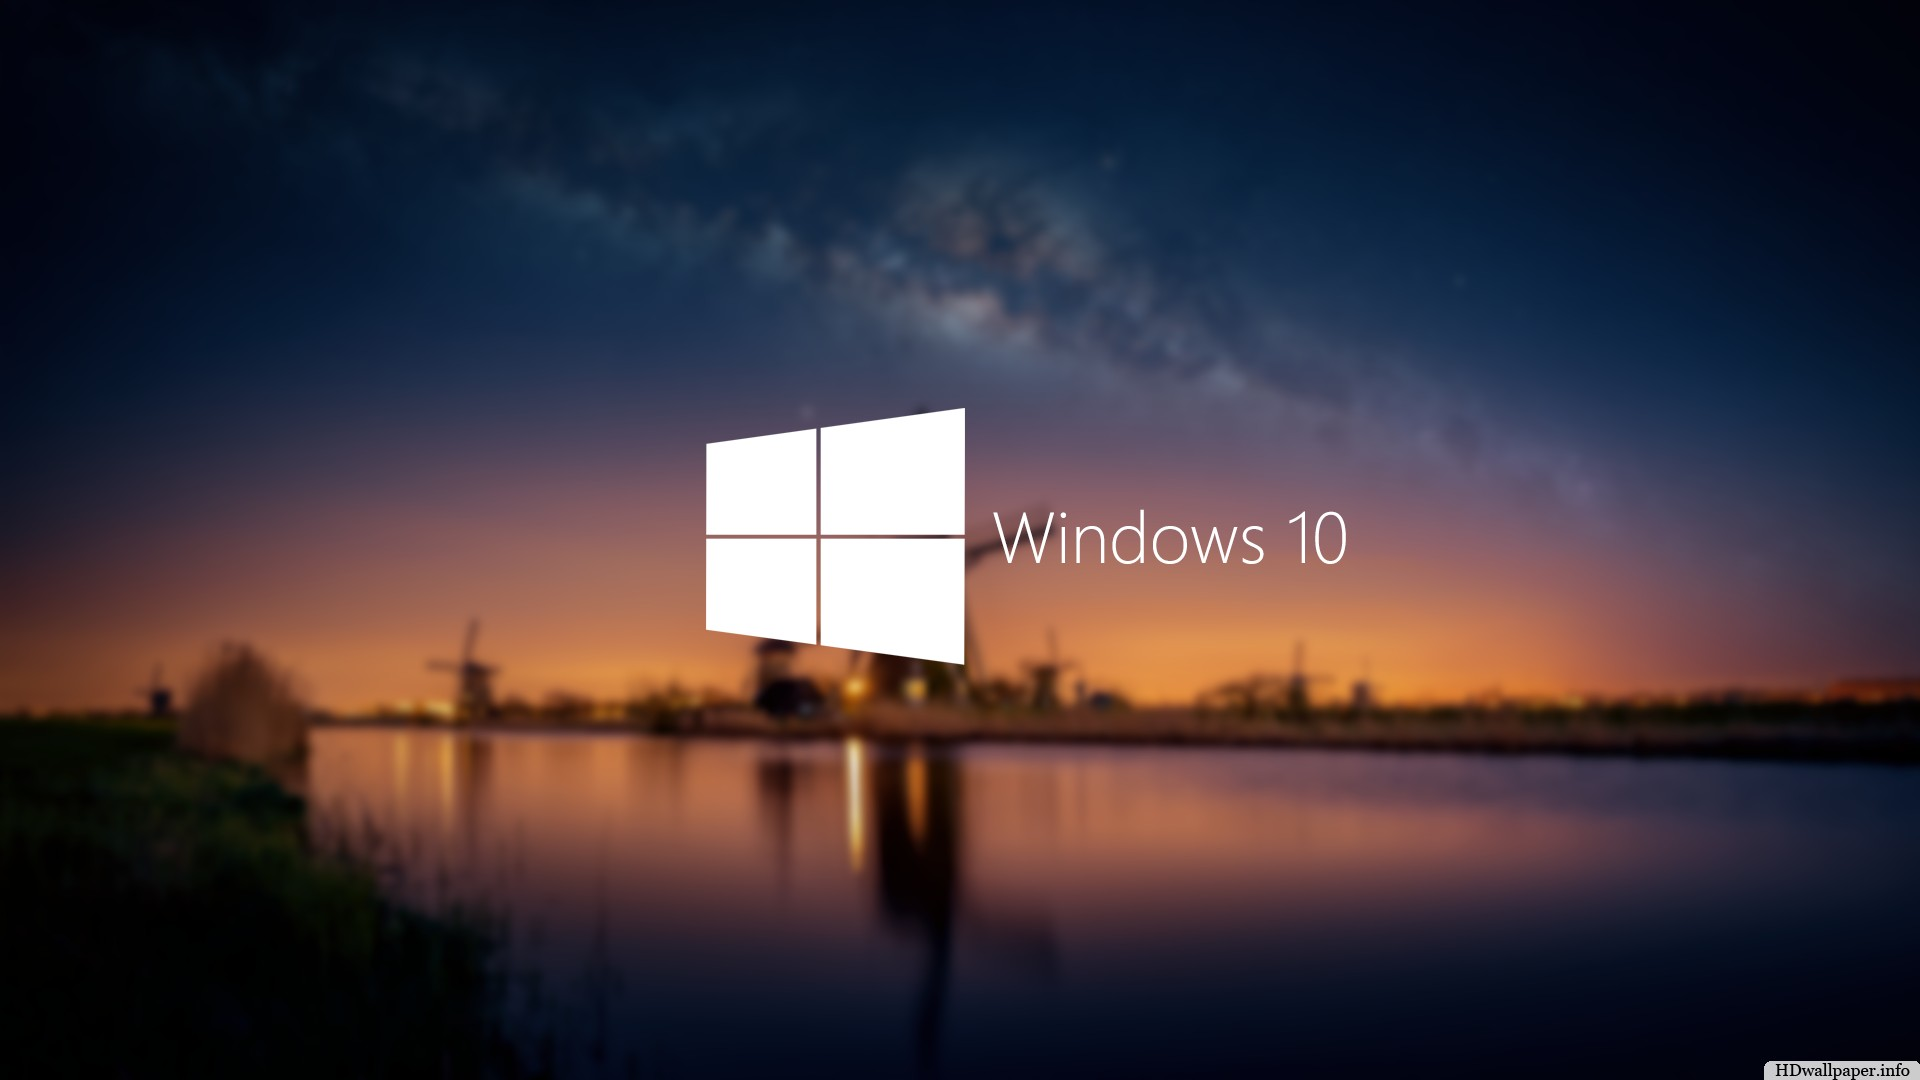 17 Windows 10 Wallpapers Hd Download Free Amazing Backgrounds